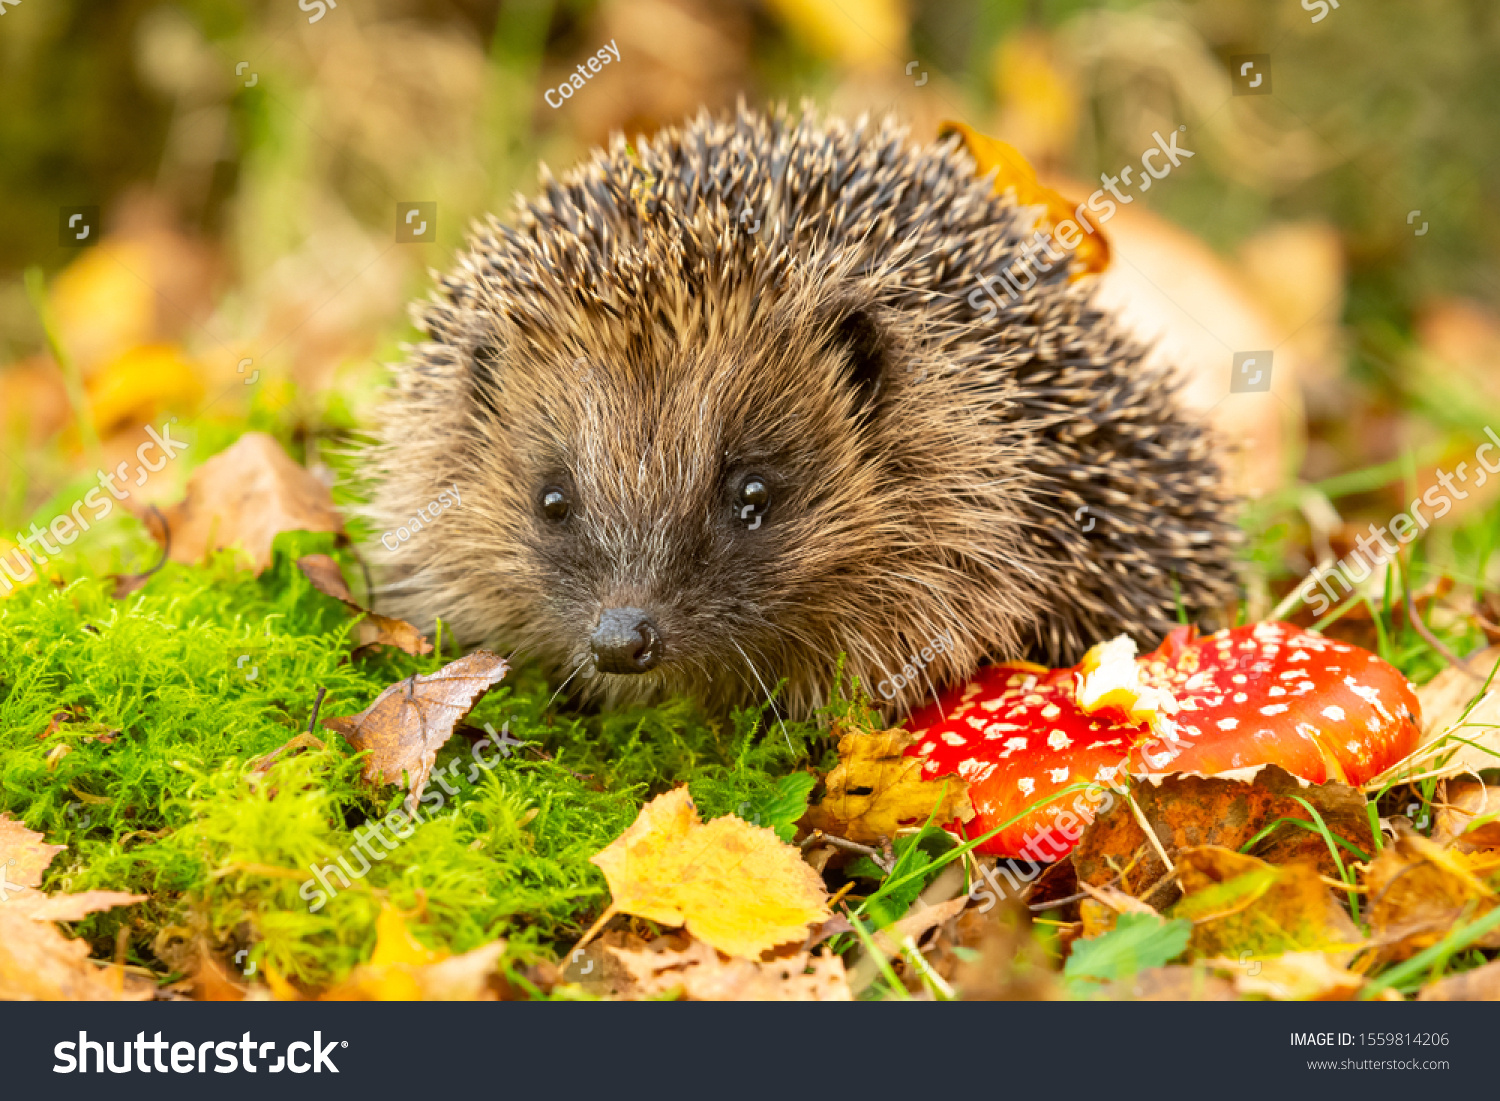 Hedgehog, (Scientific name: Erinaceus Europaeus) wild, native, European hedgehog with red Fly Agaric toadstool, and green moss.  Facing forward.  Autumn or fall. Close up. Horizontal.  Space for copy. #1559814206